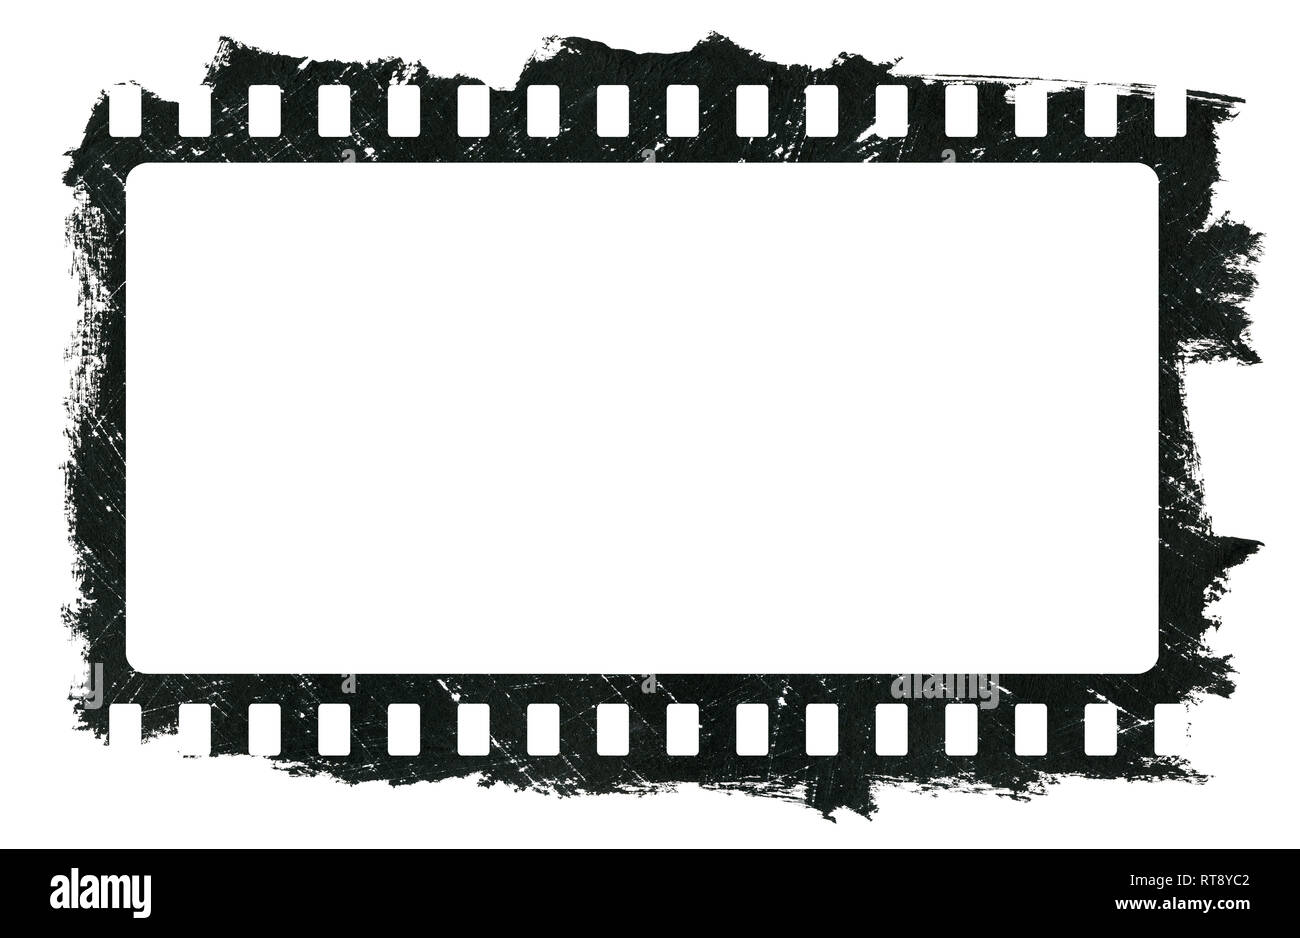 grunge scratched dirty film strip black watercolor frame is isolated on white background stock photo alamy https www alamy com grunge scratched dirty film strip black watercolor frame is isolated on white background image238683650 html